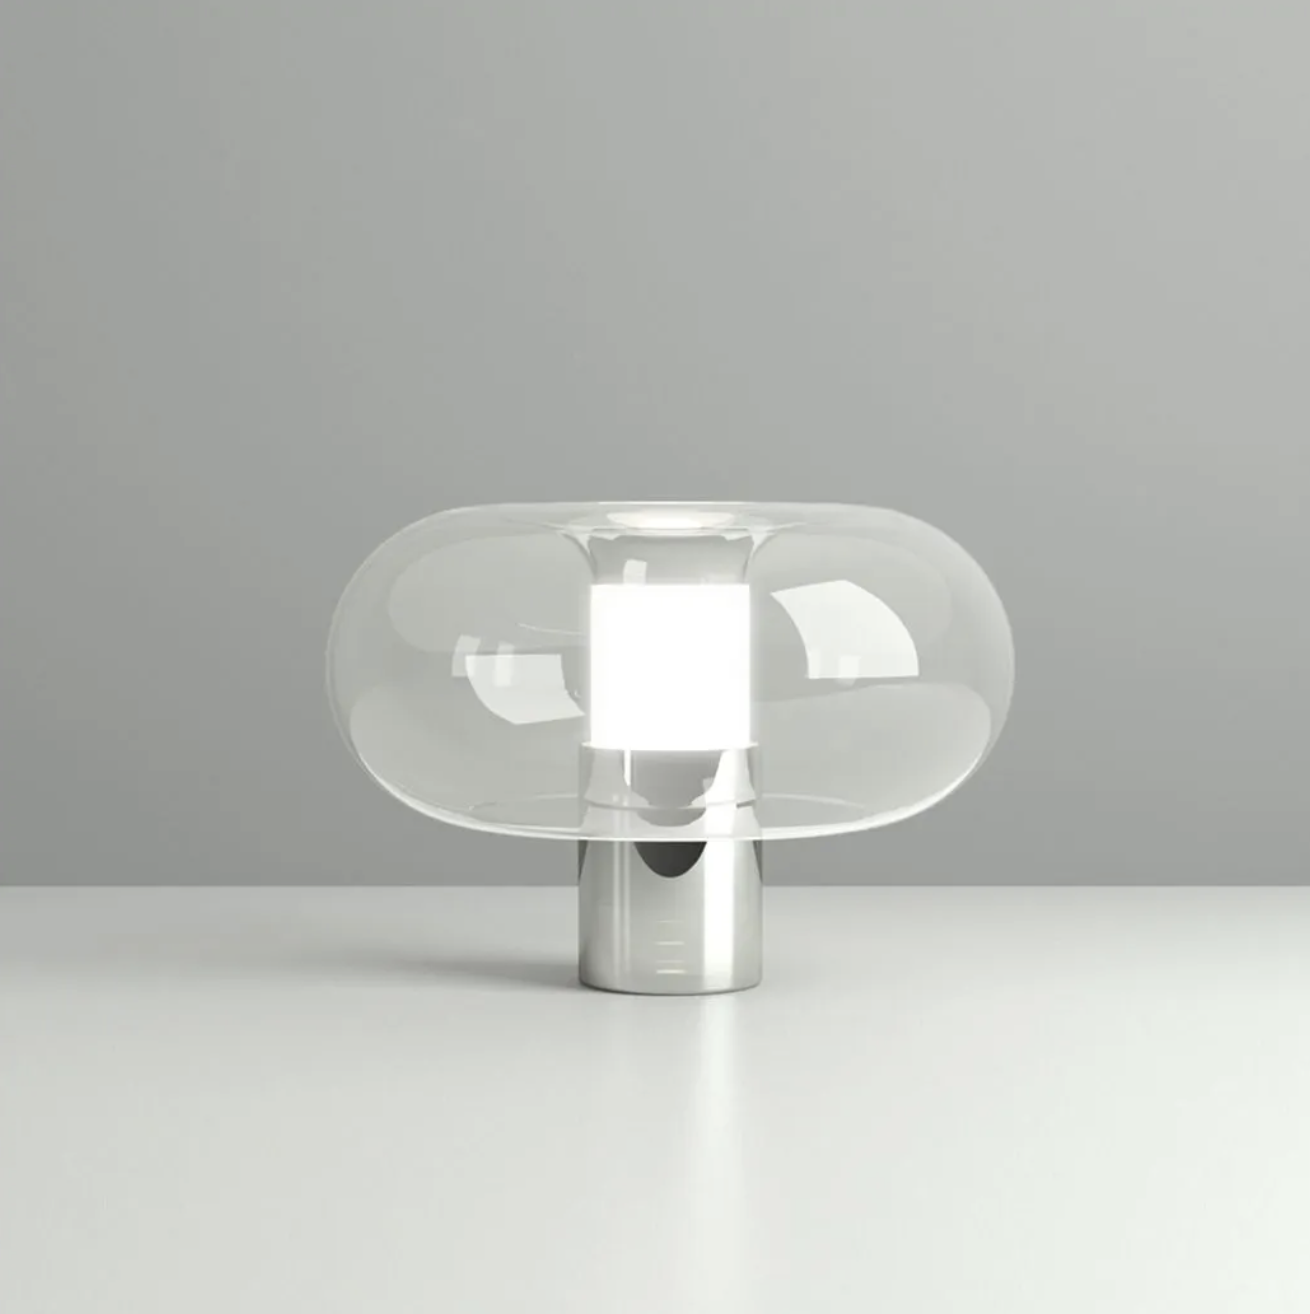 Fontanella Table Lamp - Two materials: metal and glass, as in the historic tradition of FontanaArte. The metal acts as a base and contains the light source while the glass, the true protagonist of the project, is expertly worked by skilled craftsmen in a process of fusion between a portion of transparent glass and a satin one from which the light diffuses. Fontanella is formed by the union of two glasses: the internal tube is threaded, sandblasted and finally joined with the bubble-shaped blown glass. What makes the processing particularly refined is the manual joining of the two parts, which requires the skillful technique of a craftsman. Furthermore, the glass, which has always been the material par excellence of the FontanaArte product, is the most crystalline on the market. The use of light bulbs, dimmable and not dimmable, for the biggest energy saving, complete the contemporaneity of this FontanaArte piece.